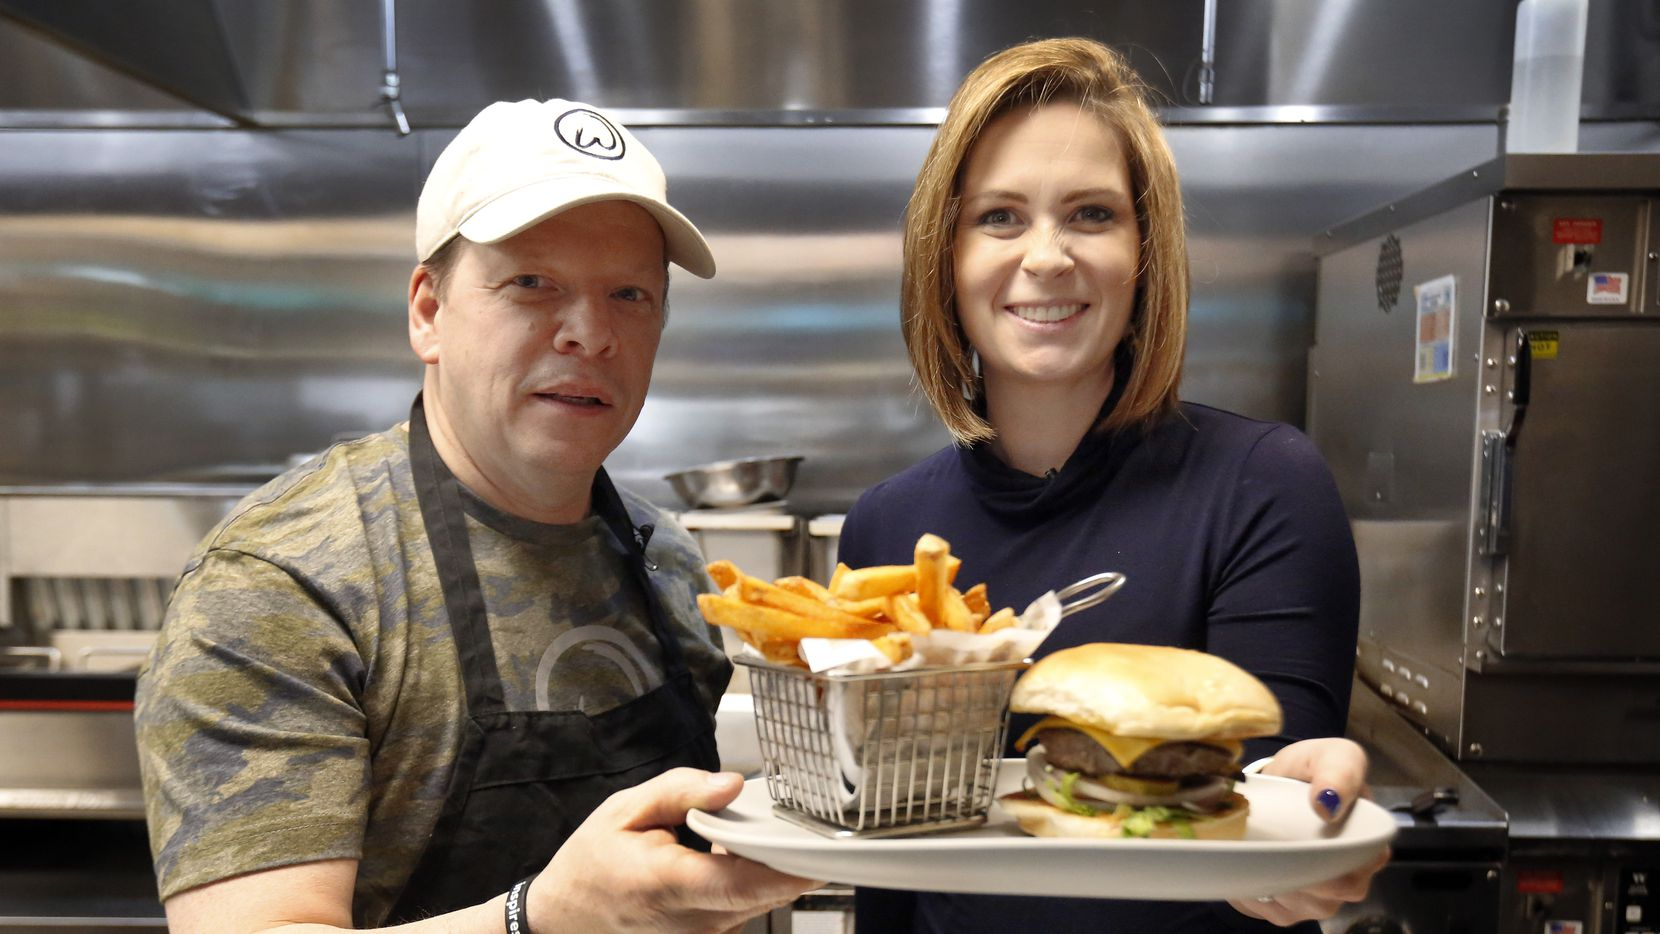 Wahlburgers co-founder Paul Wahlberg showed Dallas Morning News restaurant reporter Sarah Blaskovich how to cook their famous burgers at the Frisco restaurant. Paul is brothers and co-founders in the business with Donnie Wahlberg of New Kids on the Block and actor Mark Wahlberg.